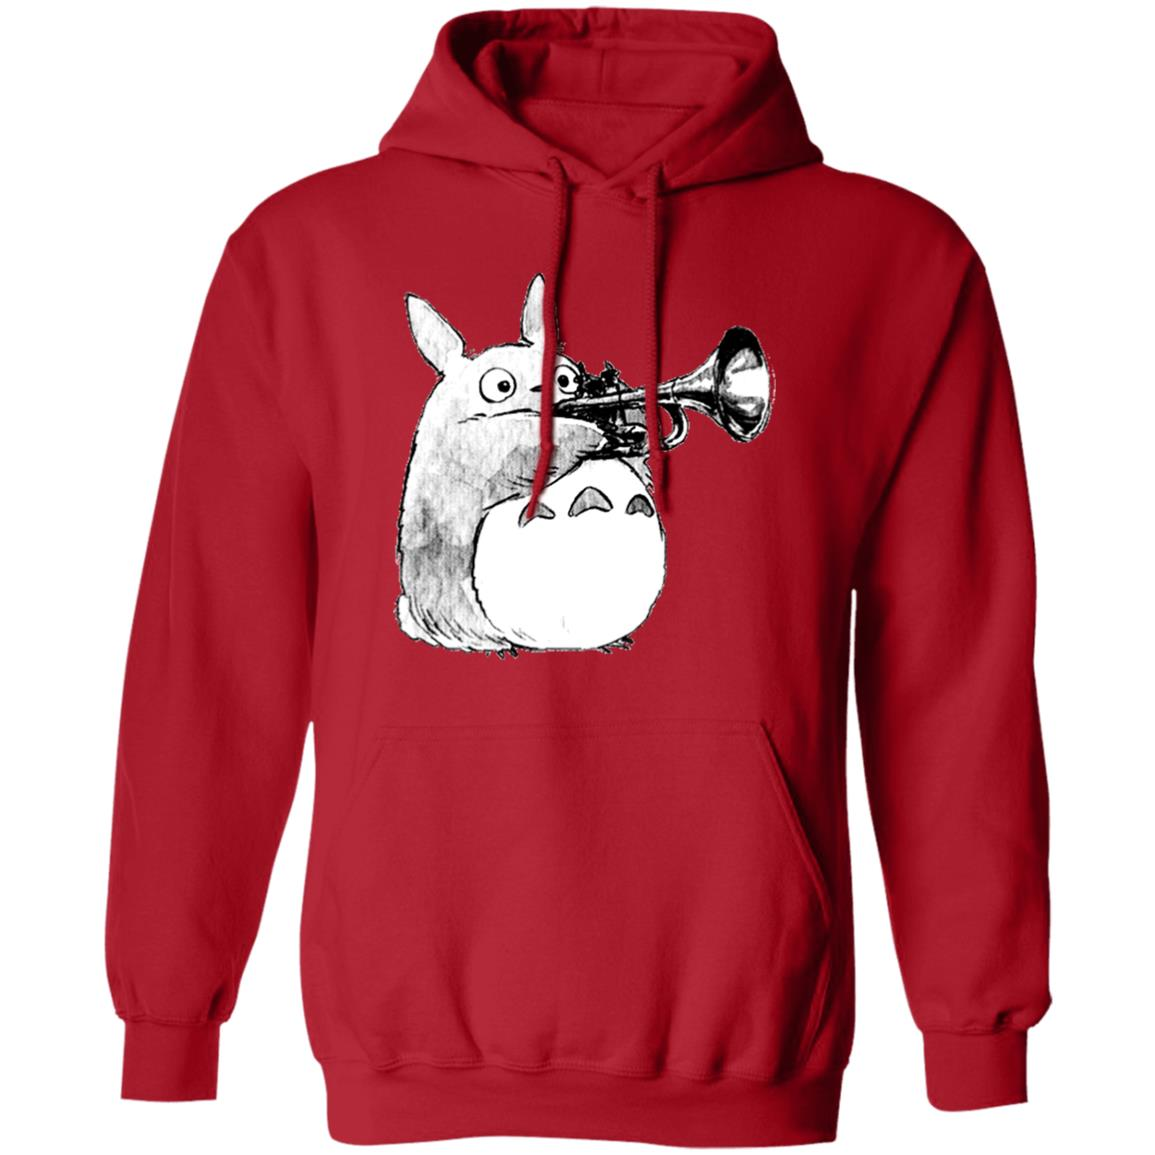 Totoro and the trumpet Hoodie